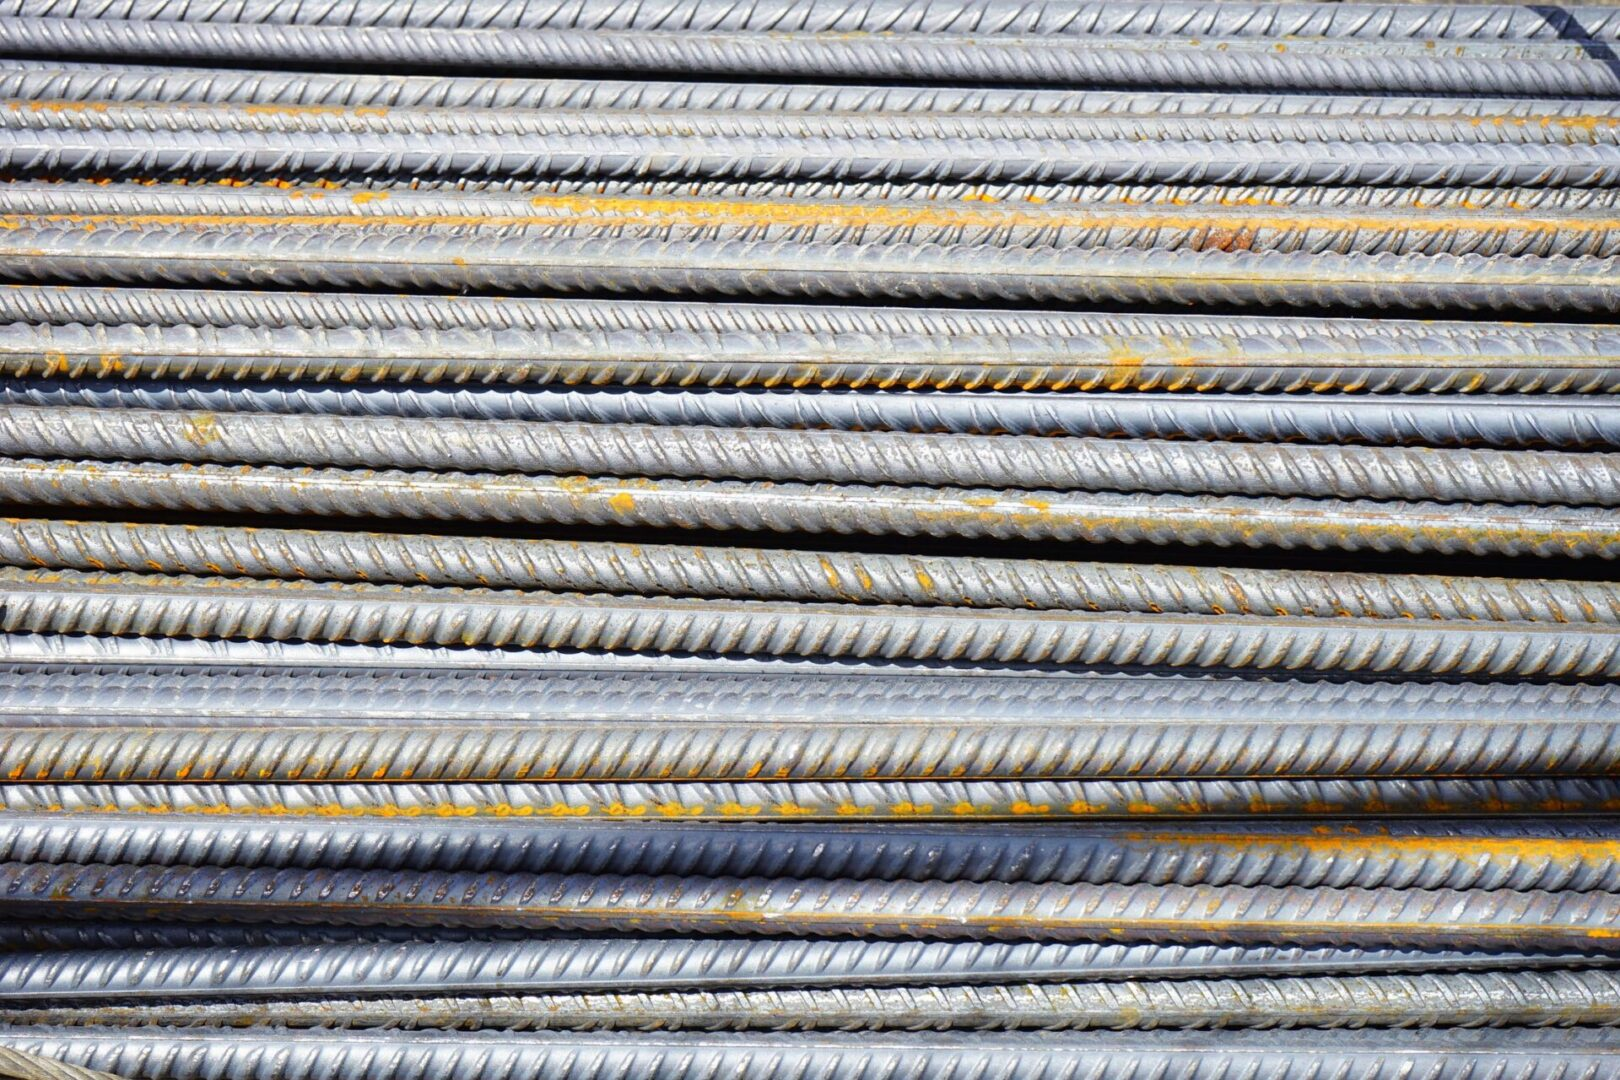 iron-rods-reinforcing-bars-rods-steel-bars-46167